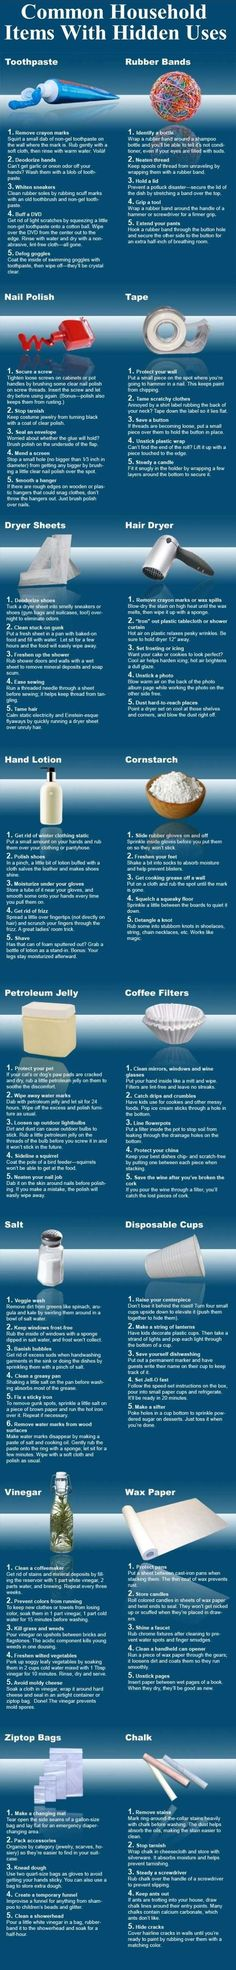 Common household items with hidden uses.